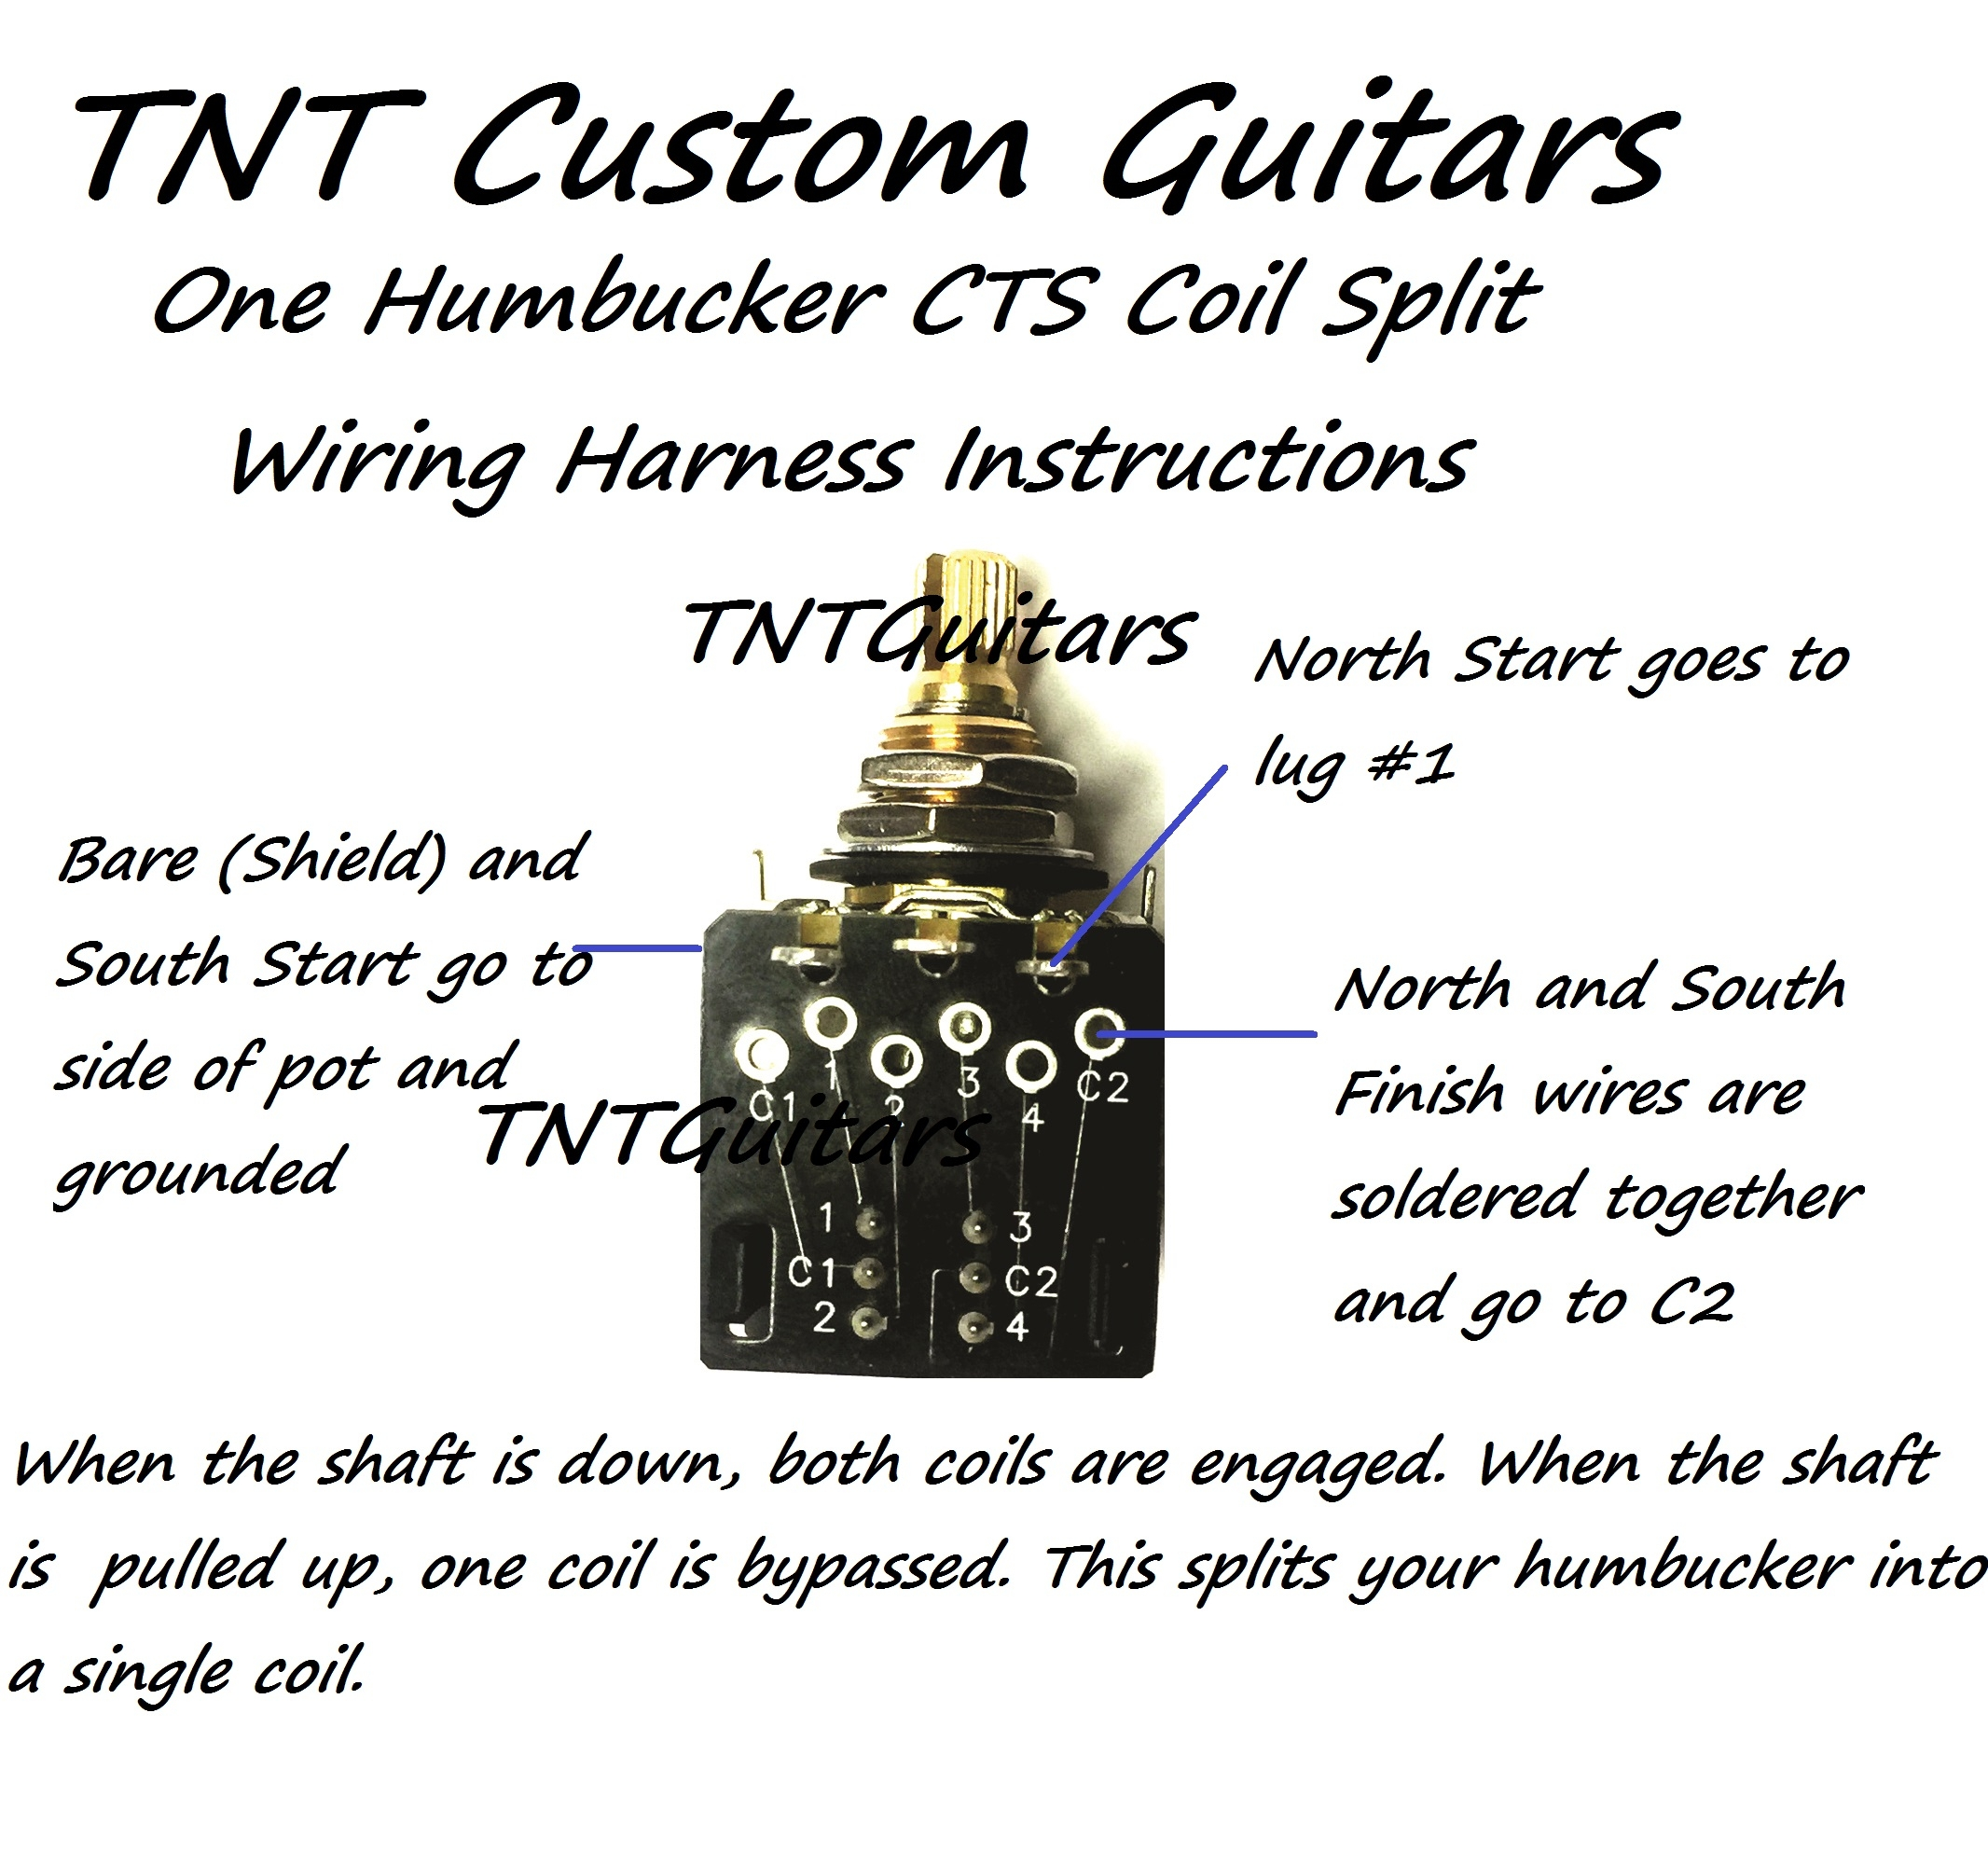 Pull Pot Humbucker Coil Split Wiring Diagram Master 1v1t One Pickup Harness Cts Push Rh Dragonfireguitars Com Dpdt Single